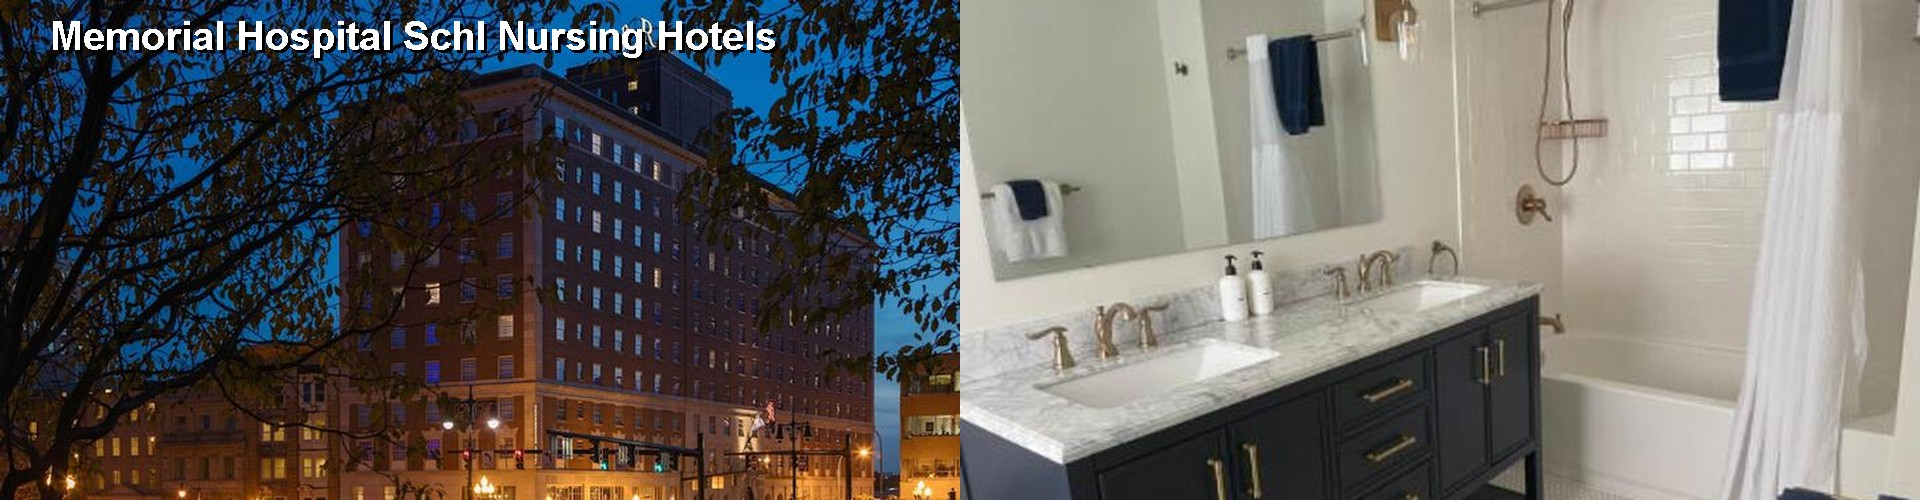 5 Best Hotels near Memorial Hospital Schl Nursing